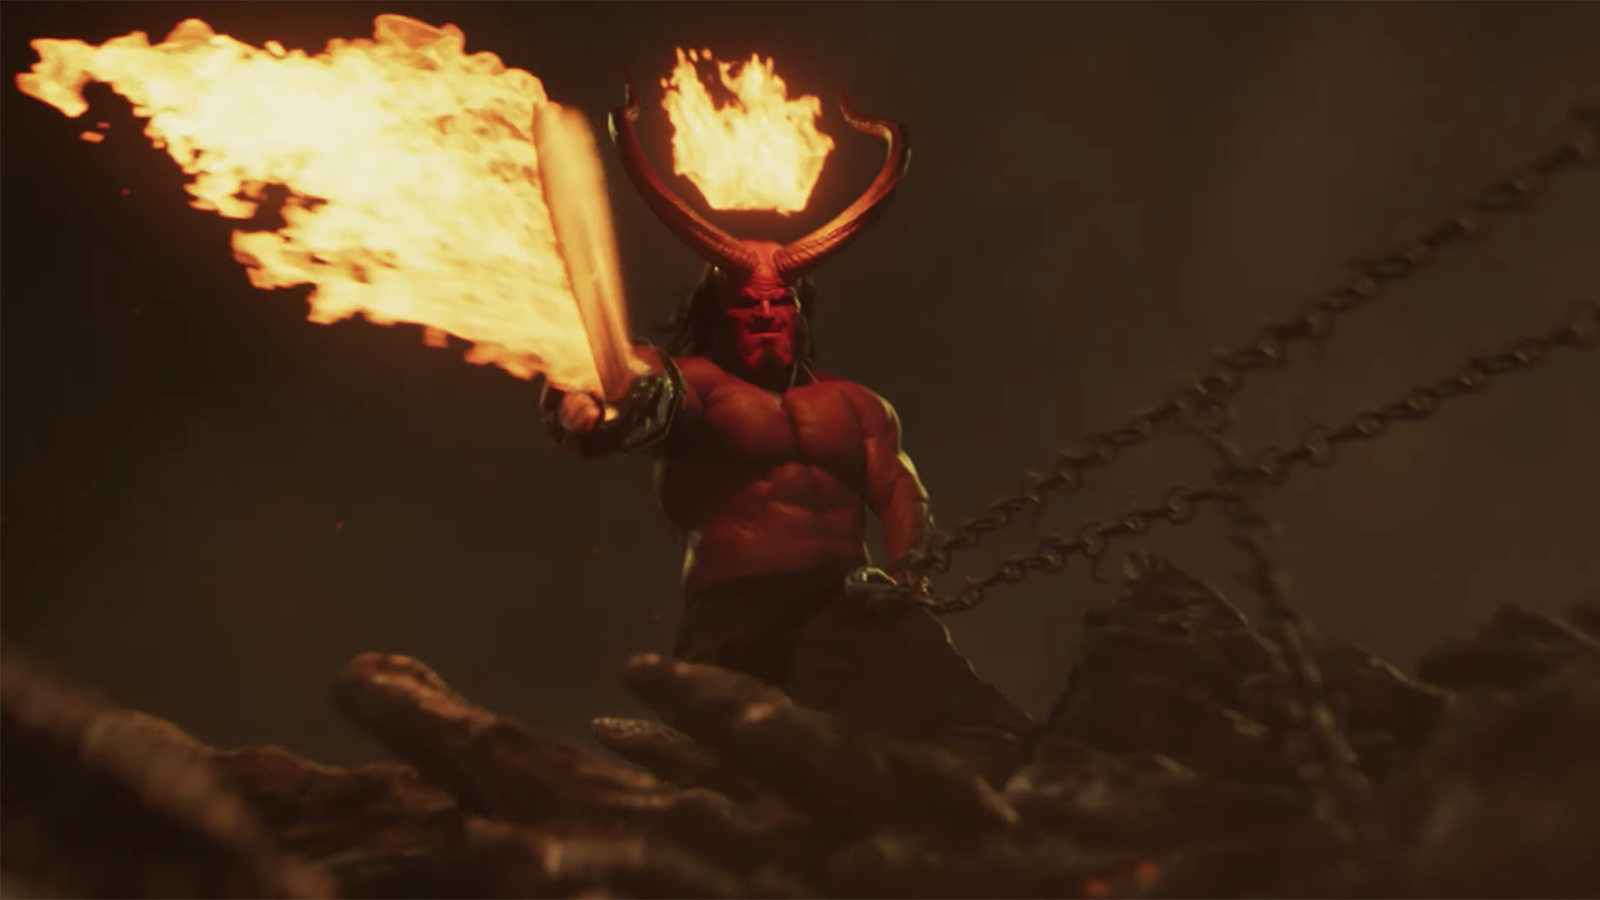 See Insane New 'Hellboy' Red-Band Trailer Featuring Symphonic Deep Purple Cover